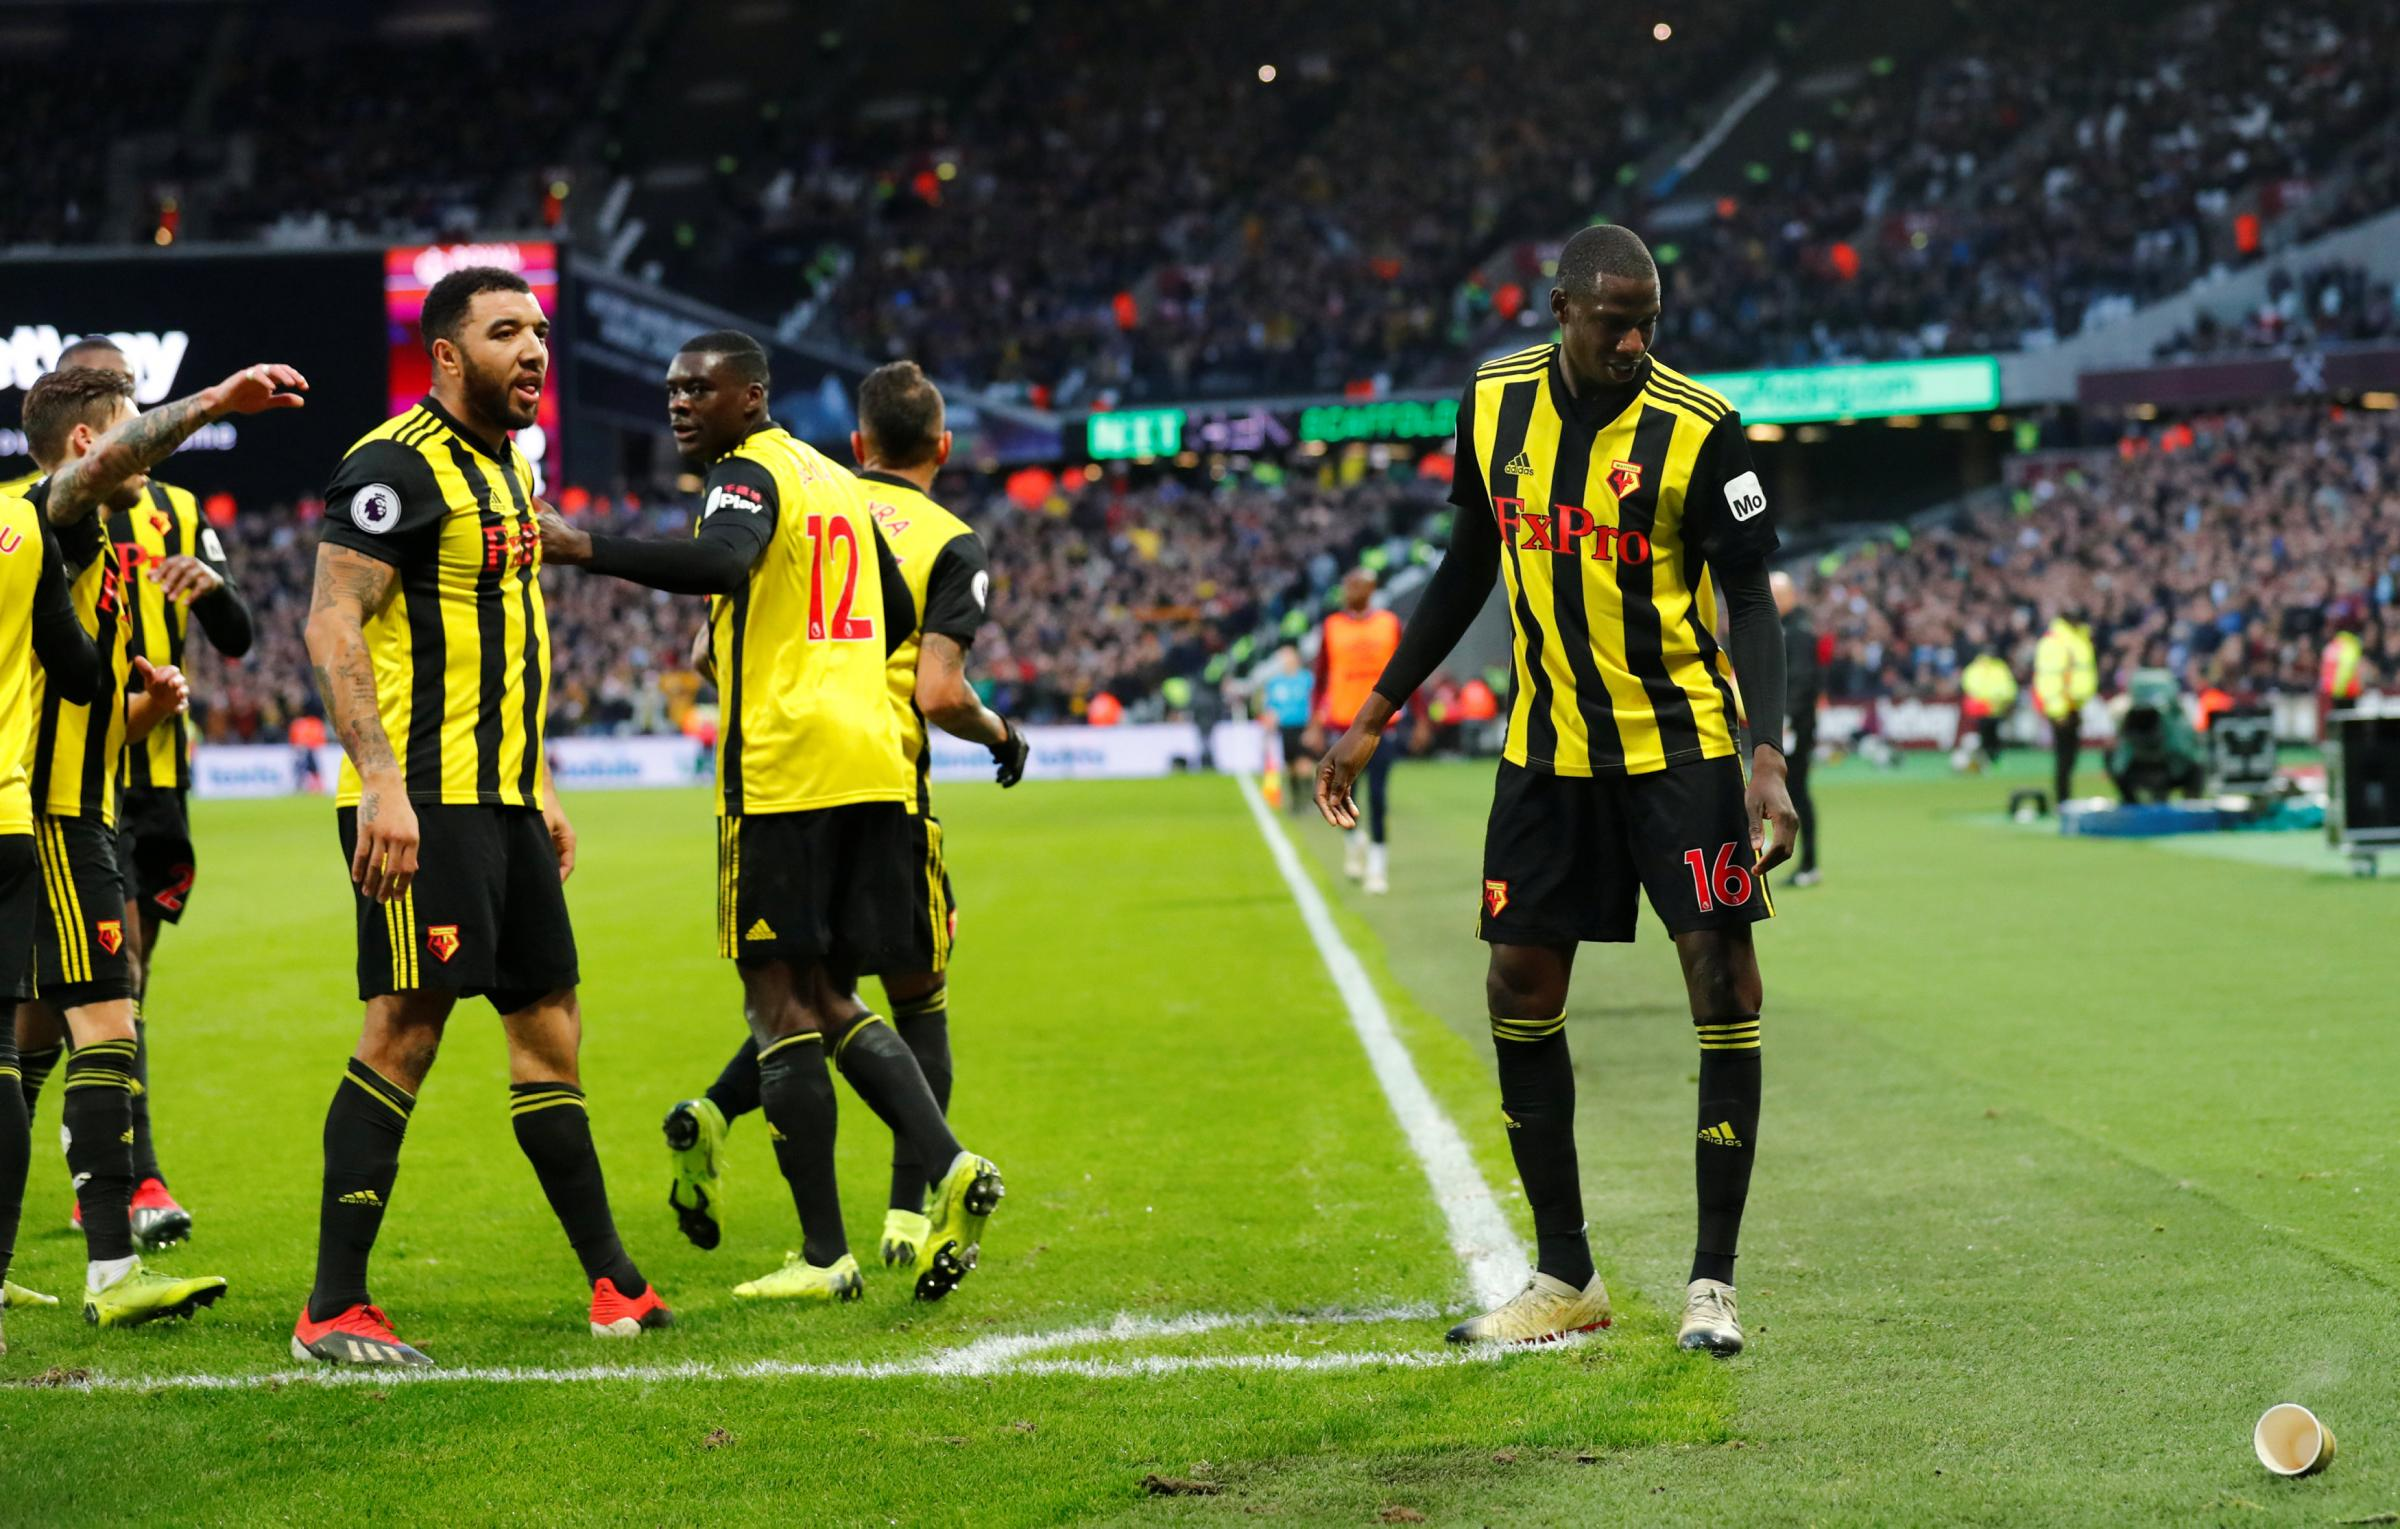 A paper cup was thrown at Troy Deeney during his goal celebration. Picture: Action Images